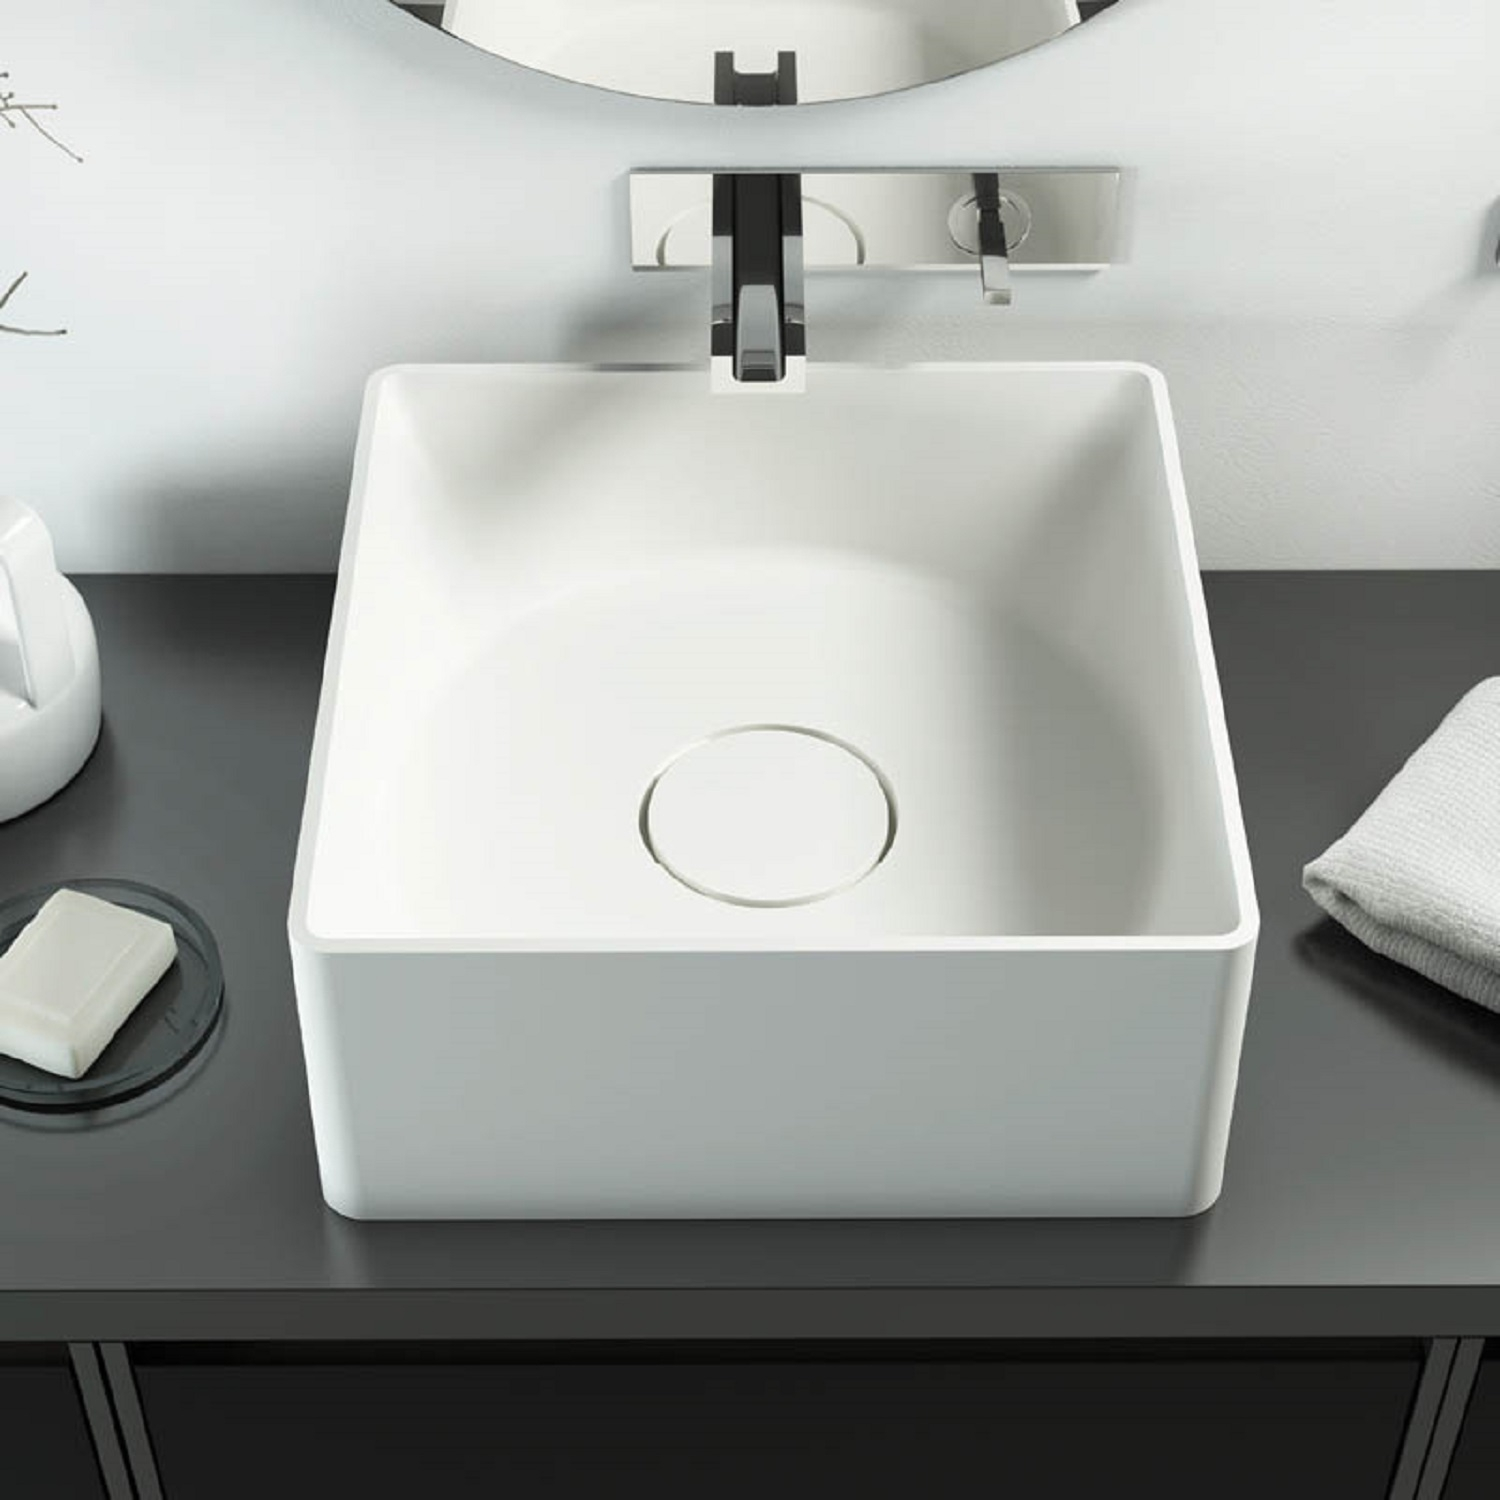 RELAX DESIGN INSIDE OUT Q CIRCLE LUXOLID WASHBASIN - TattaHome